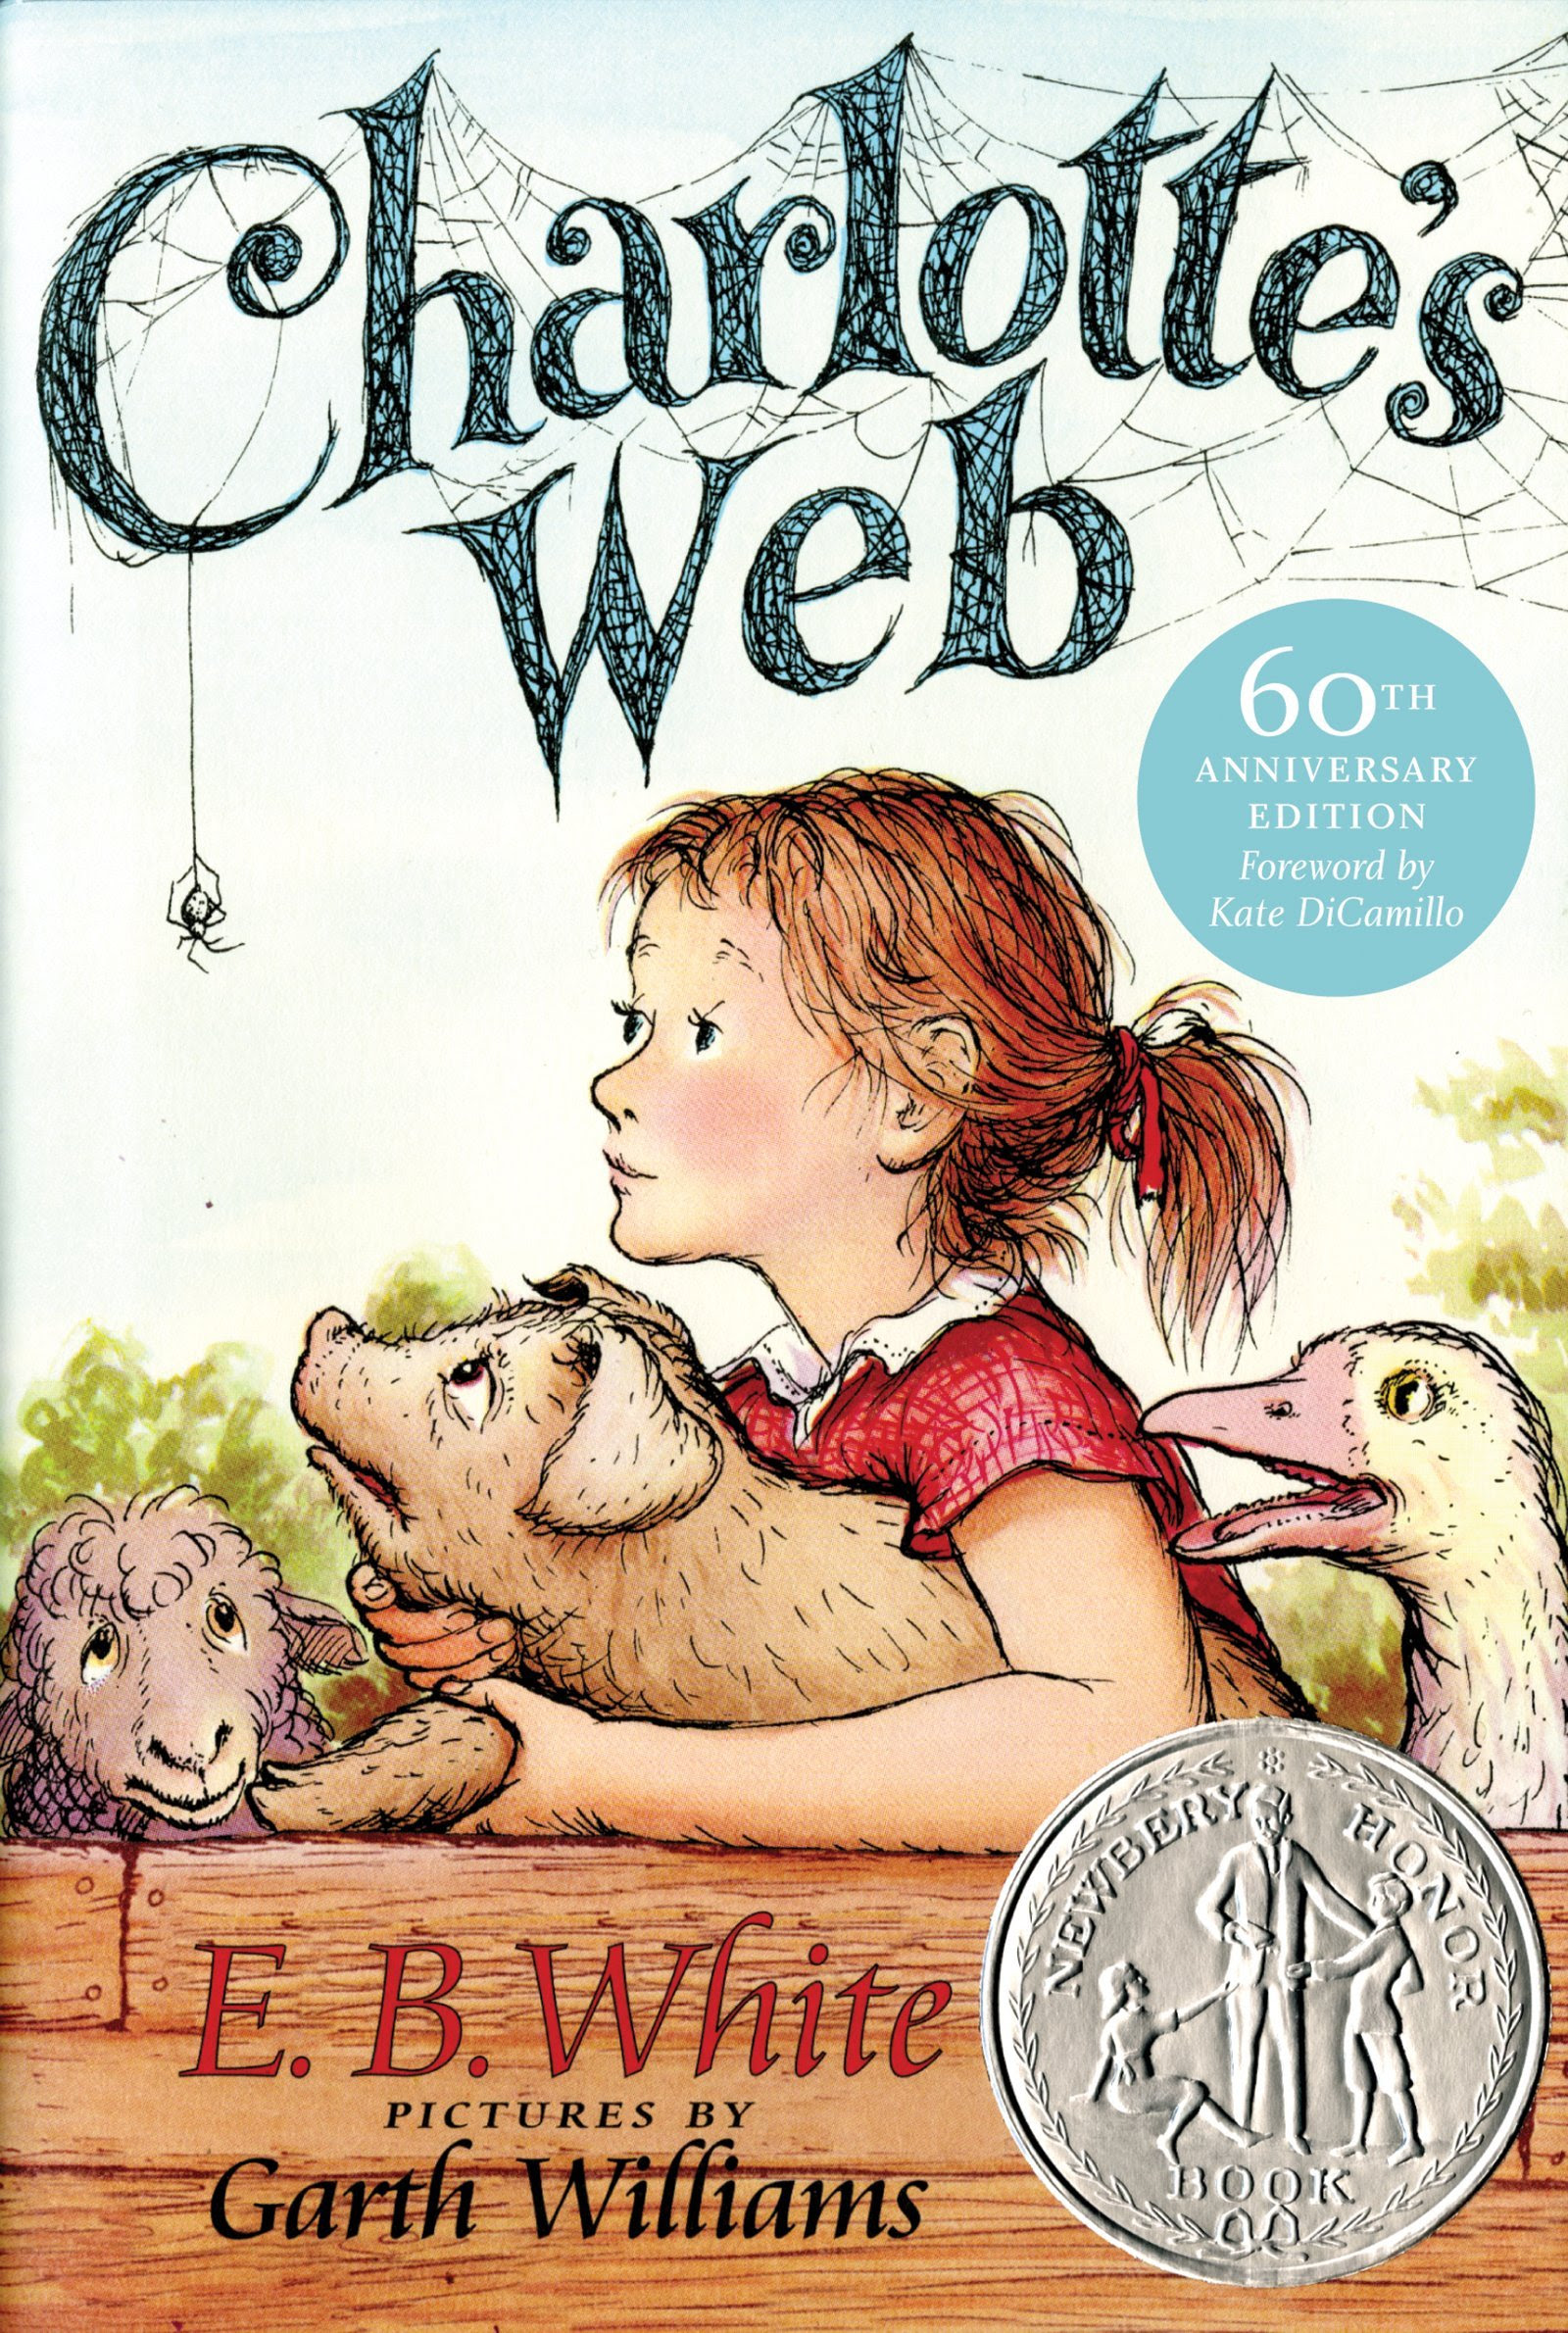 Charlotte's Web, part of list of chapter books for preschoolers